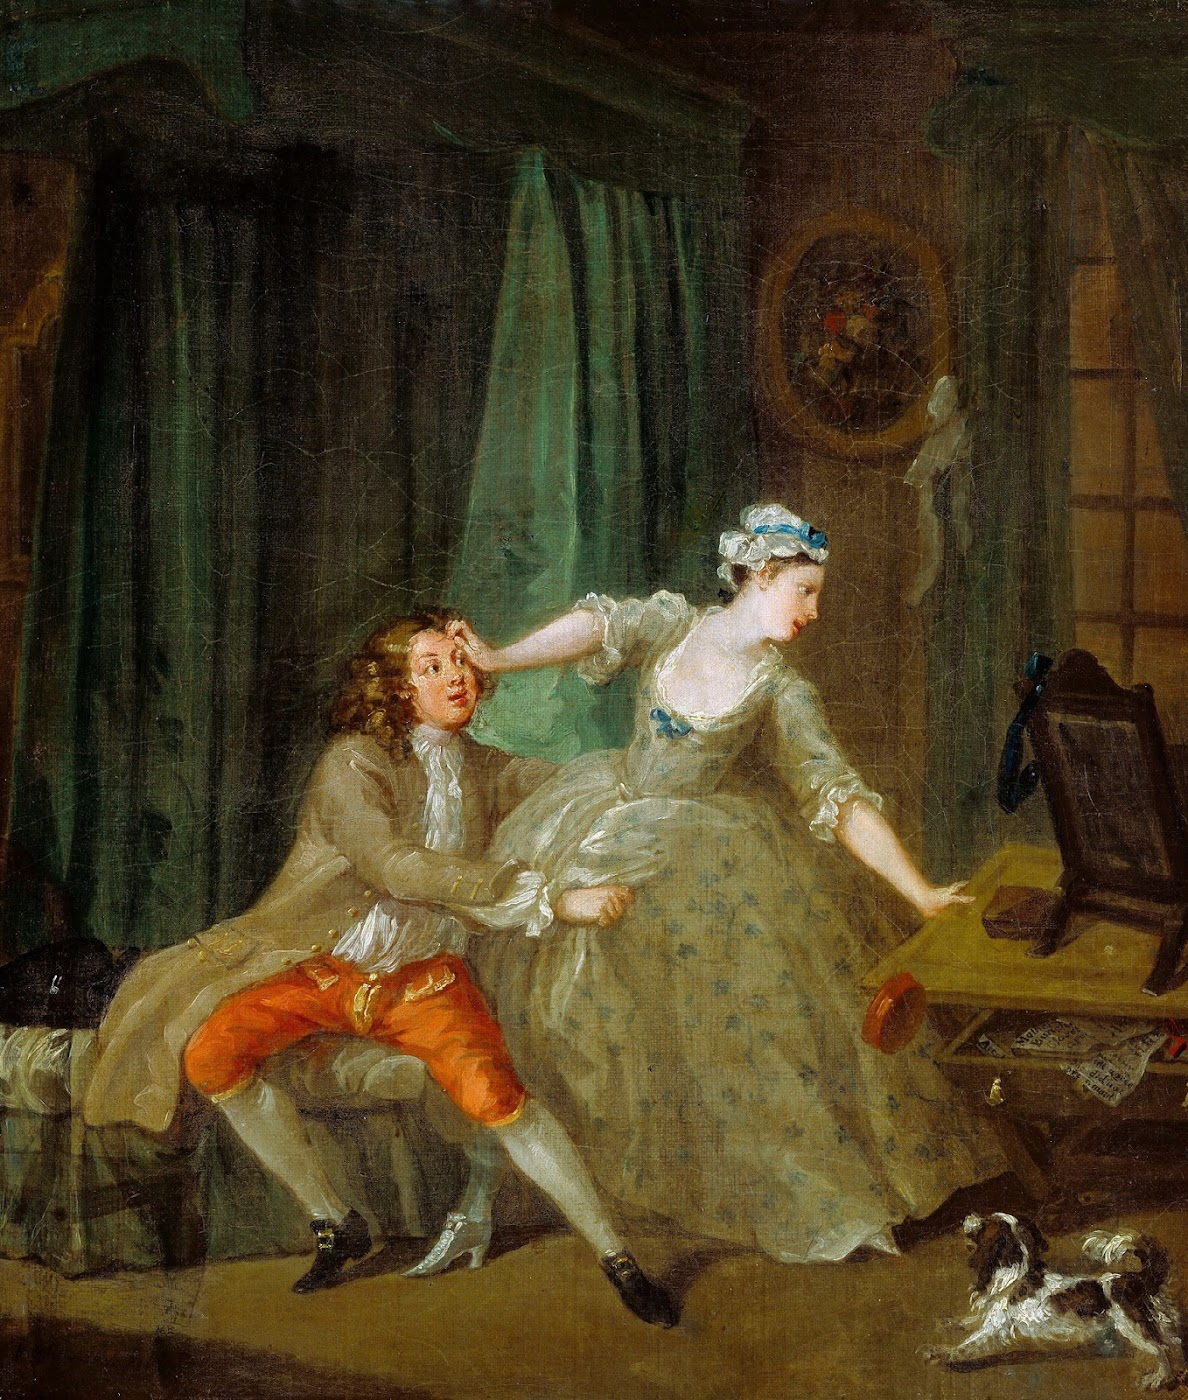 http://4.bp.blogspot.com/-jSUdkUnzhos/UO_vdmgZYYI/AAAAAAAAI9Q/51o2gZBAThw/s1400/Before,+1730-31,+by+William+Hogarth.jpg